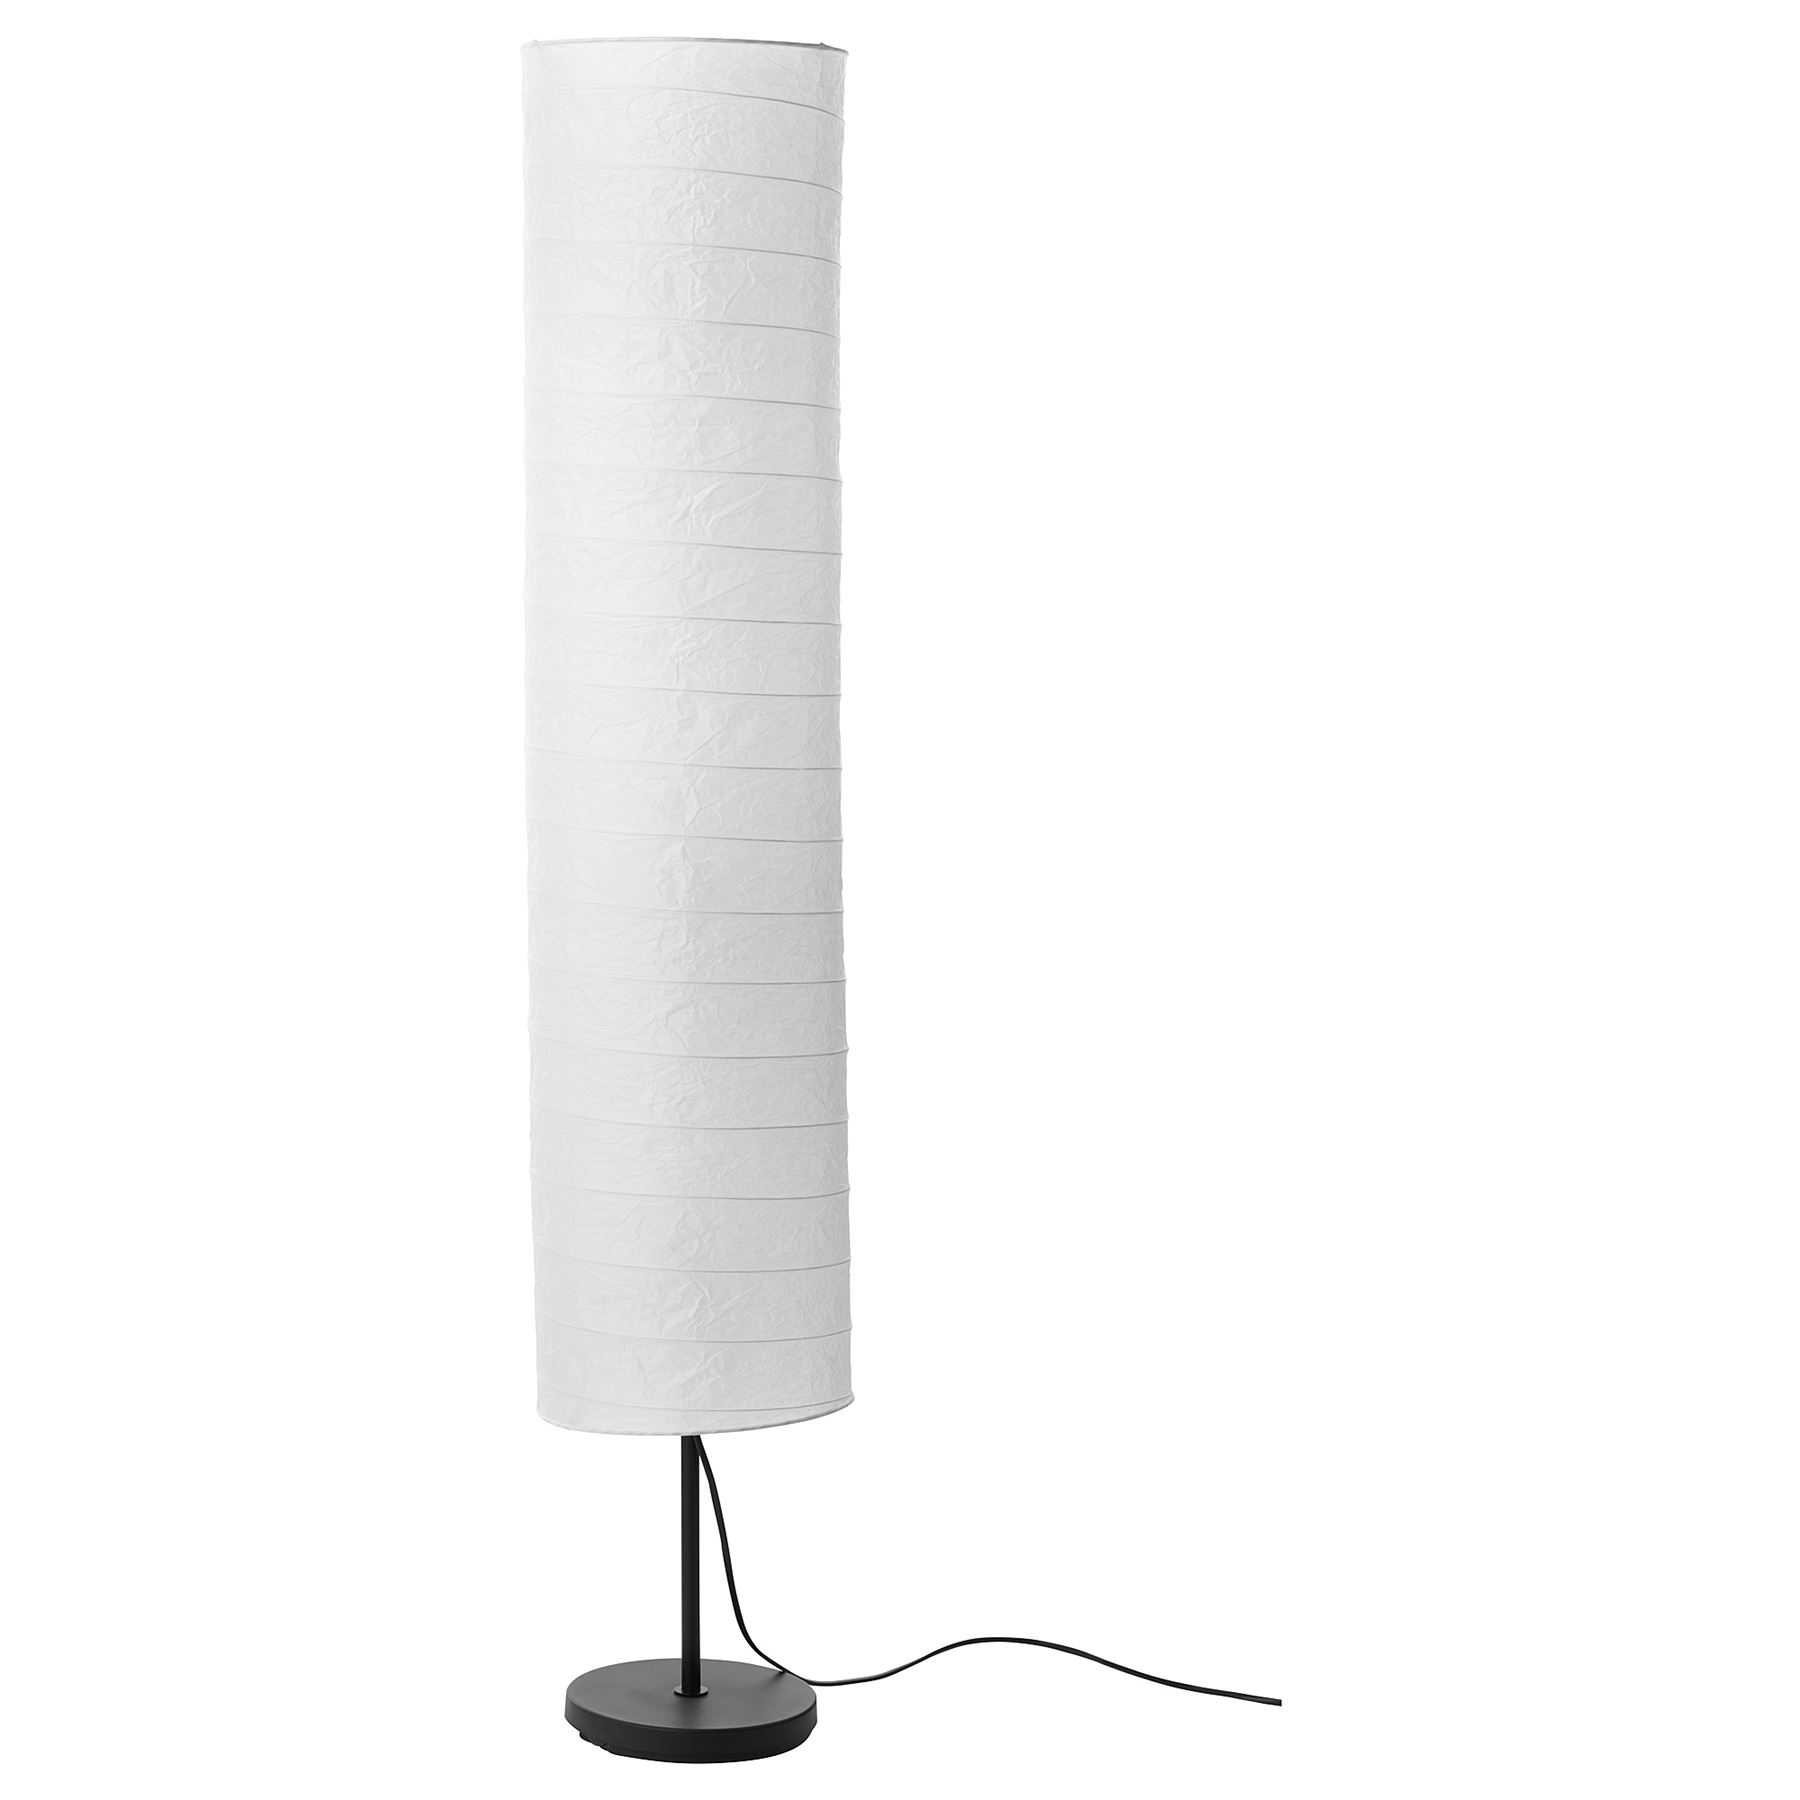 Ikea Reading Lamp Details About Ikea Holmo Tall White Floor Lamp Up Lighter Reading Light Black Base Paper Shade